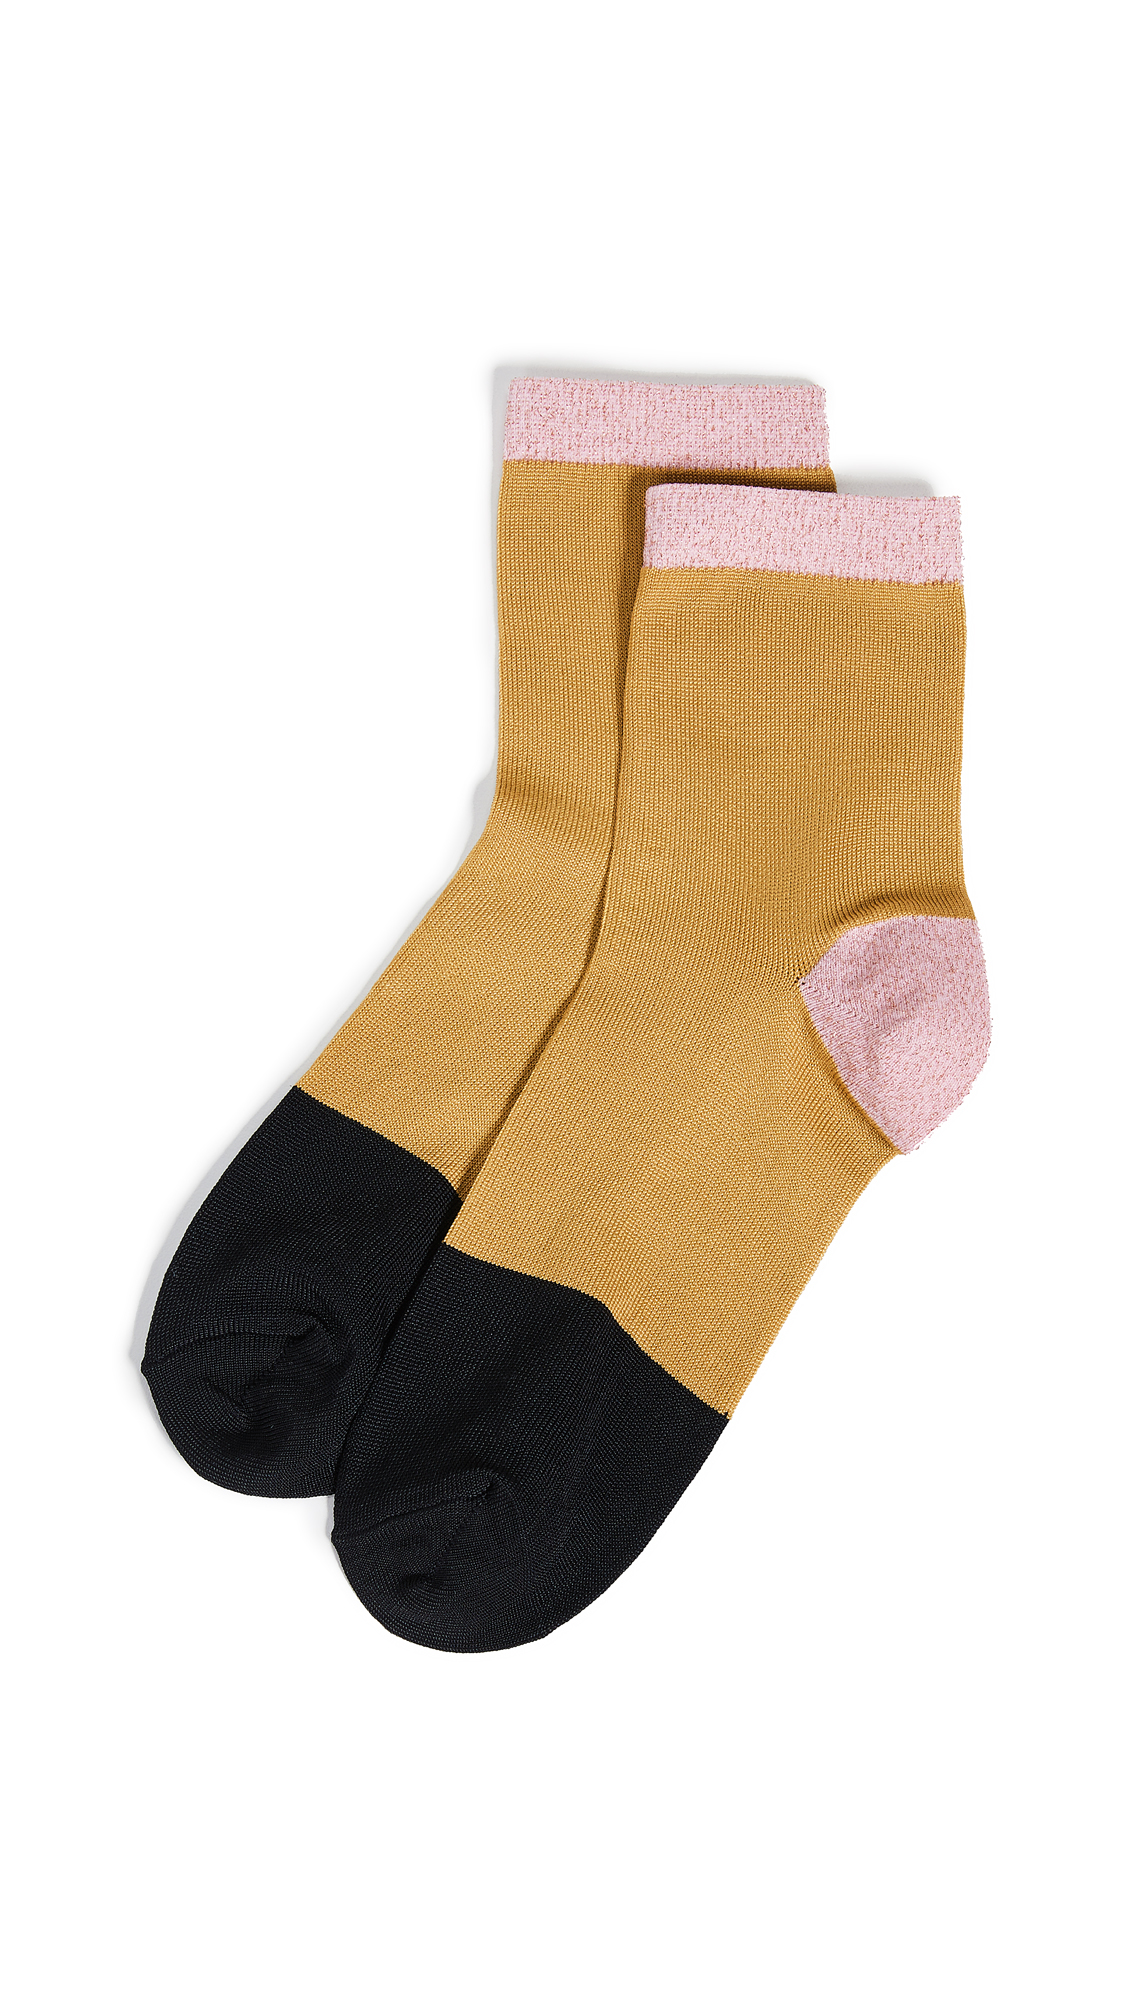 HYSTERIA Liza Ankle Socks in Yellow